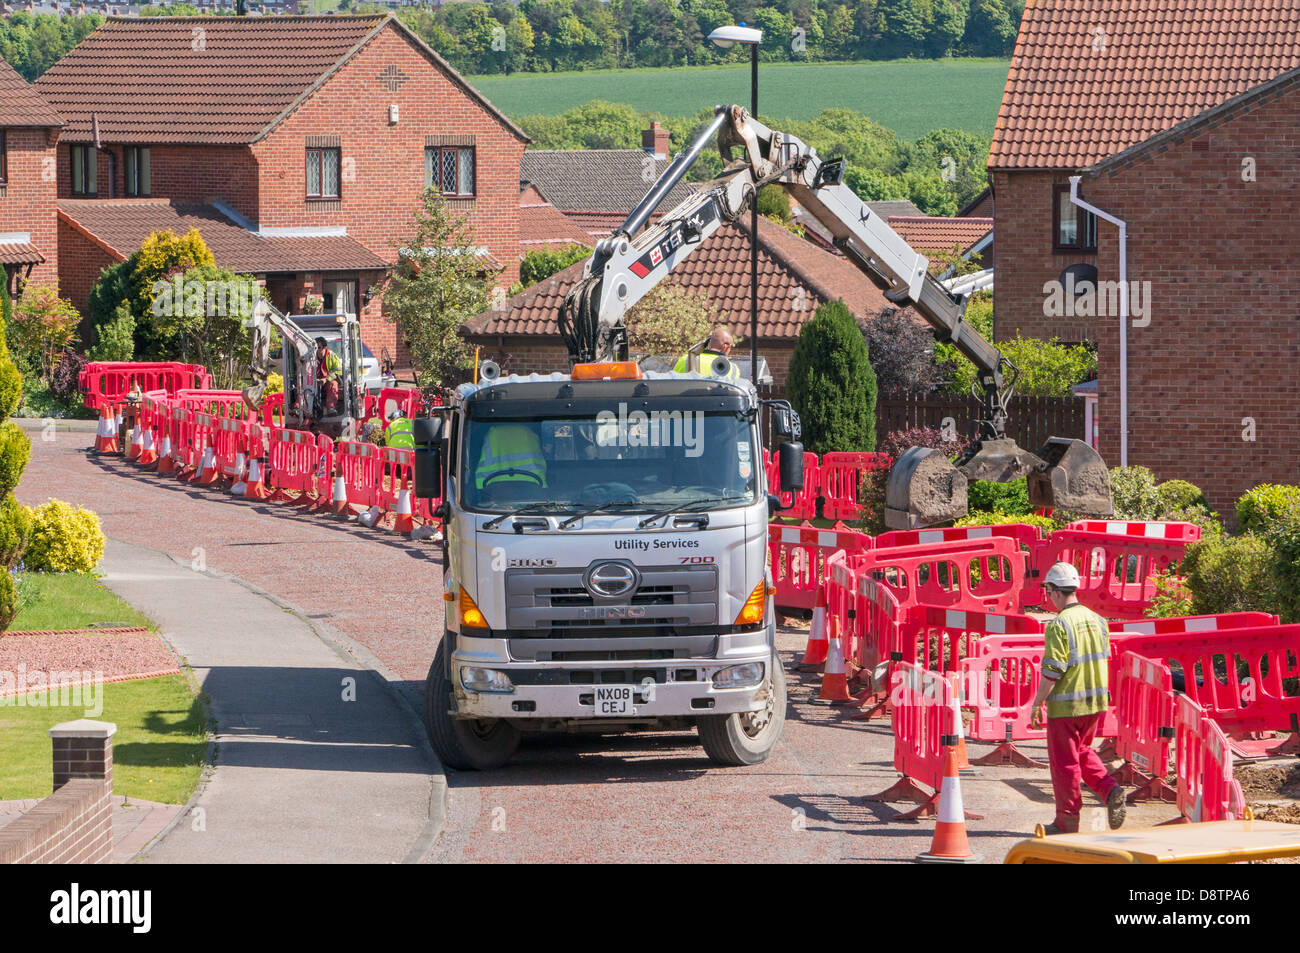 Electrical Cables Uk Stock Photos Replace Wiring House Workmen Replacing Defective Within A Housing Estate Image